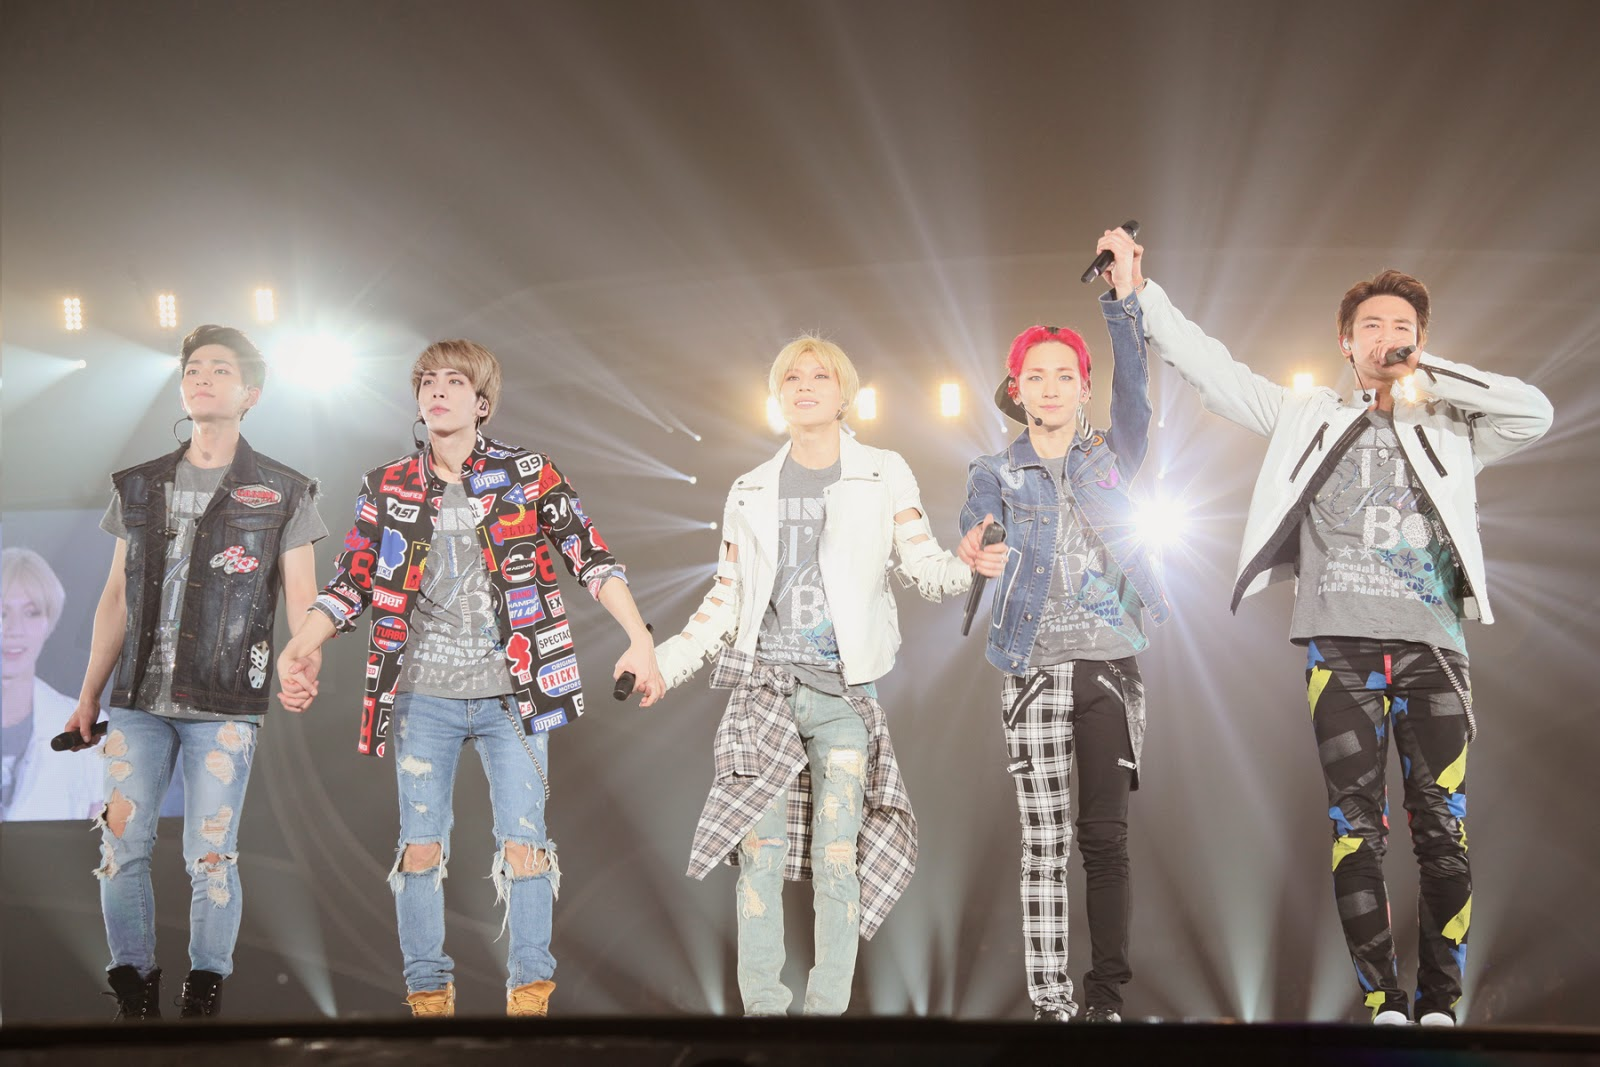 Interview in Tokyo: SHINee says it will release new album